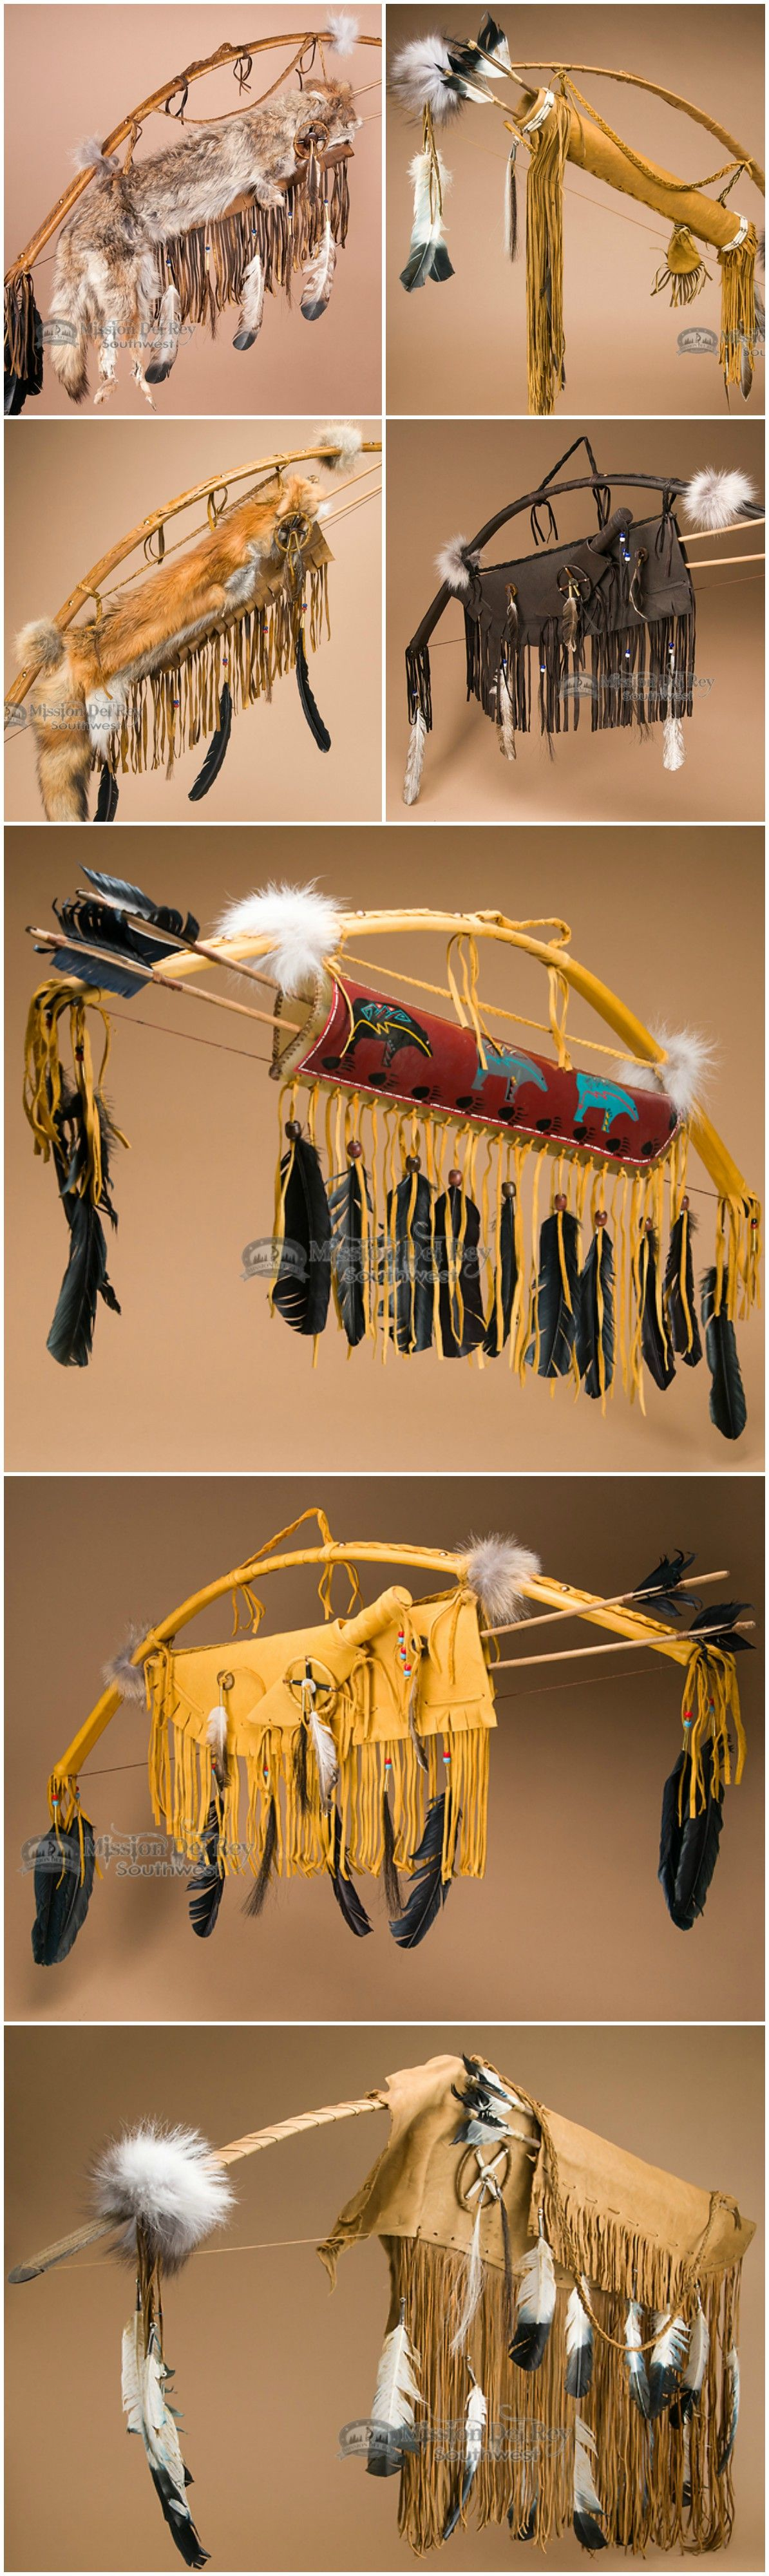 Native American bows and arrows are classic cultural icons that